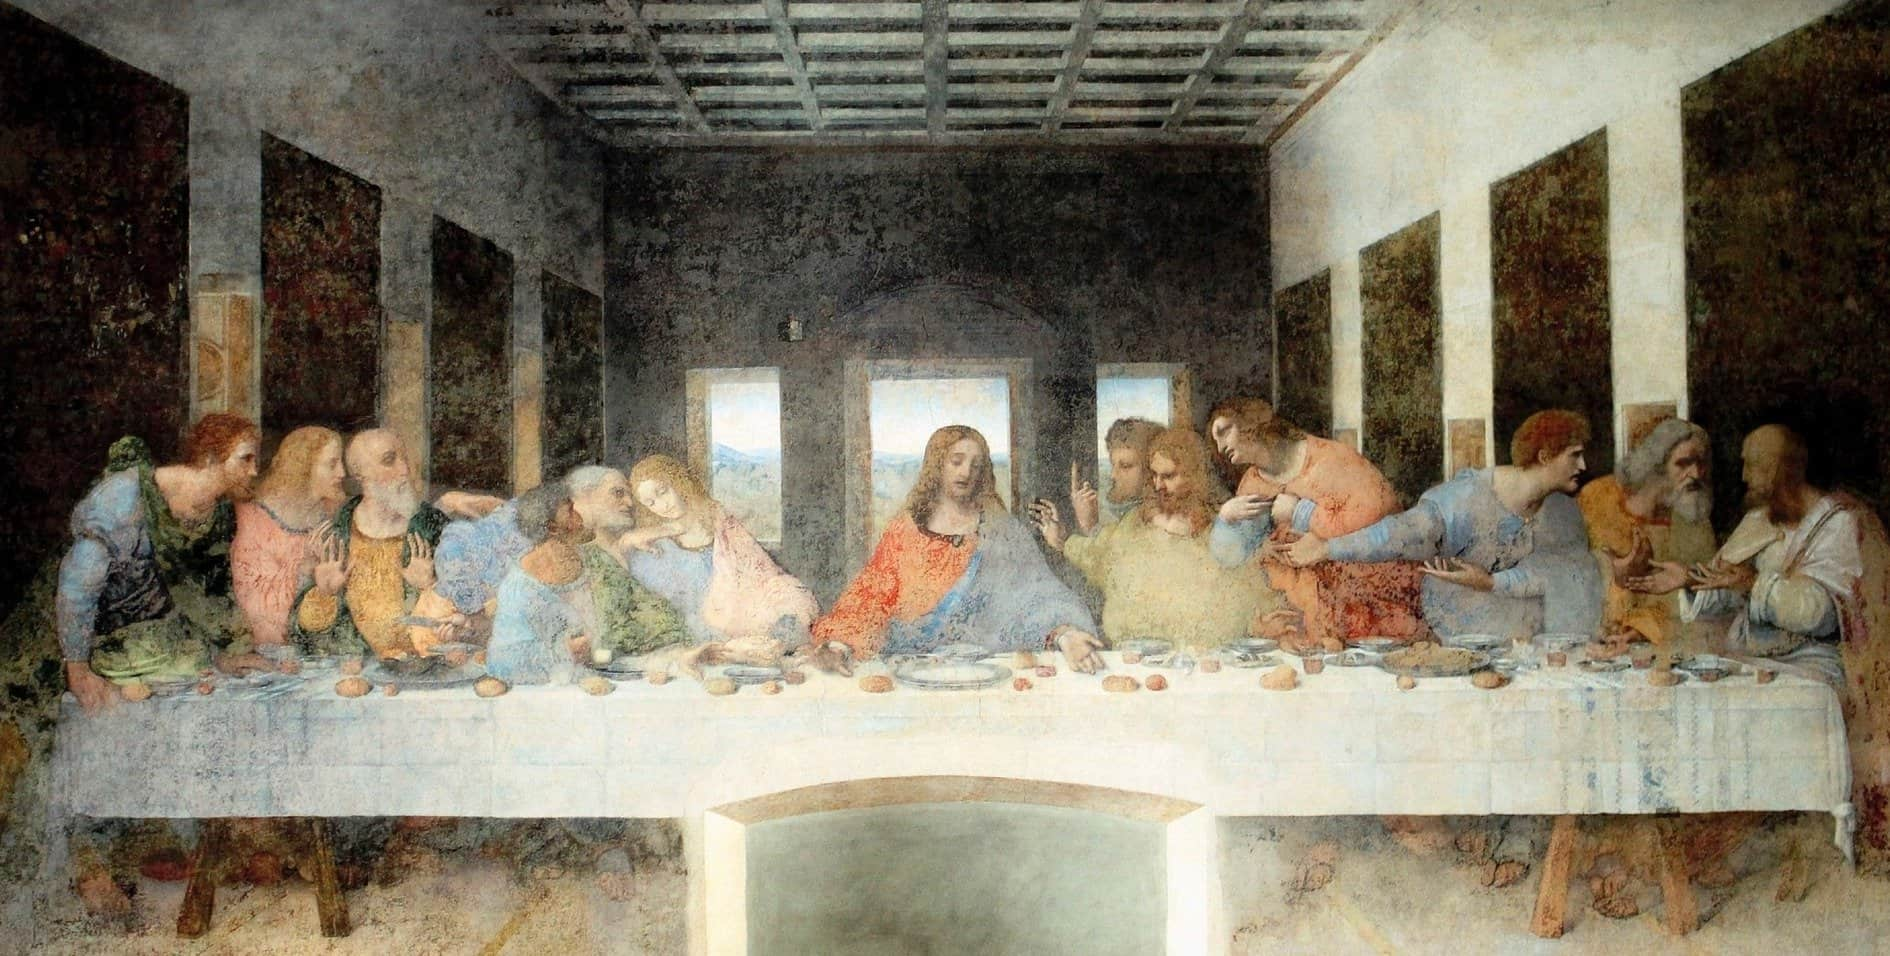 The Last Supper, Buying tickets